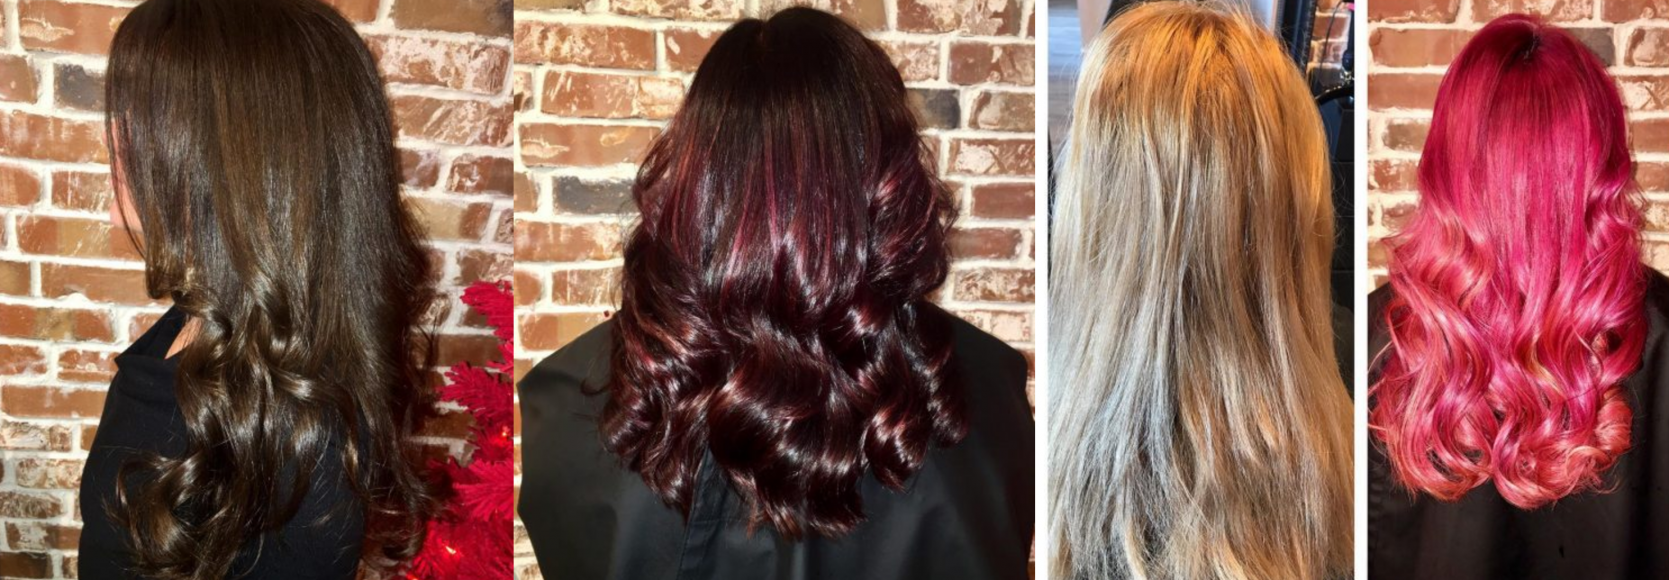 Hair-Color-Swank-Salon